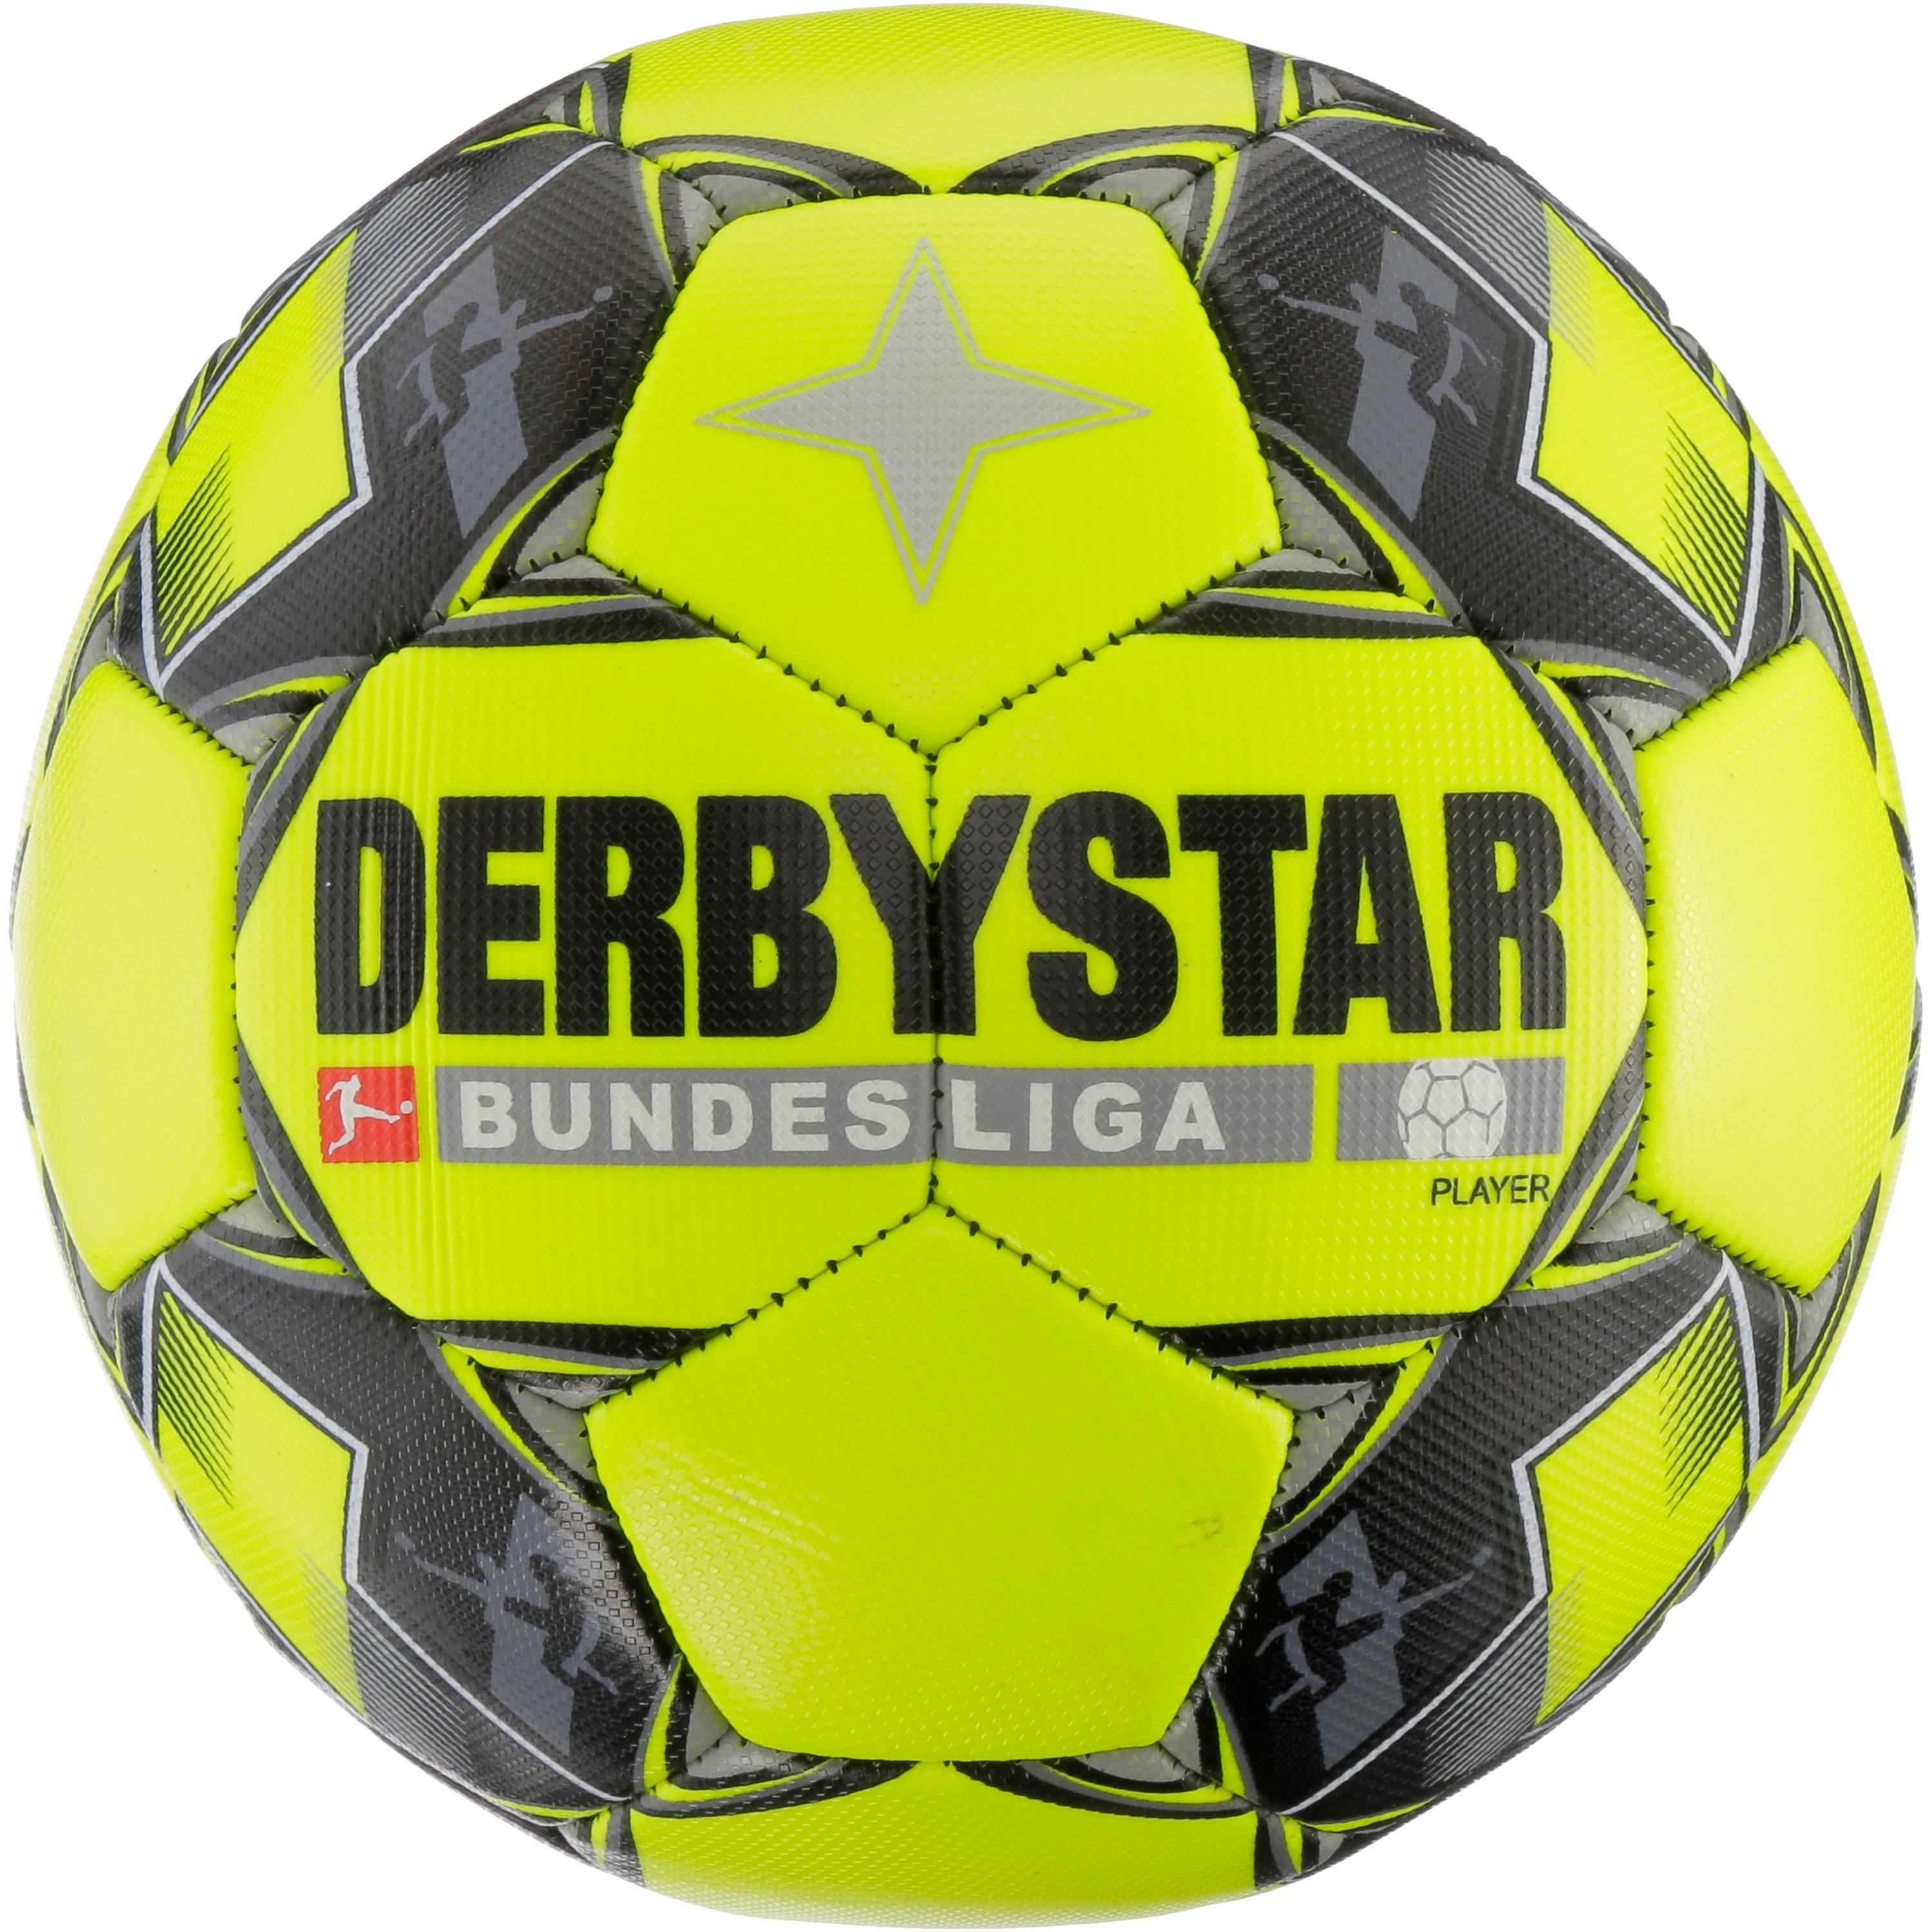 Derbystar Player Bundesliga 18/19 Fußball